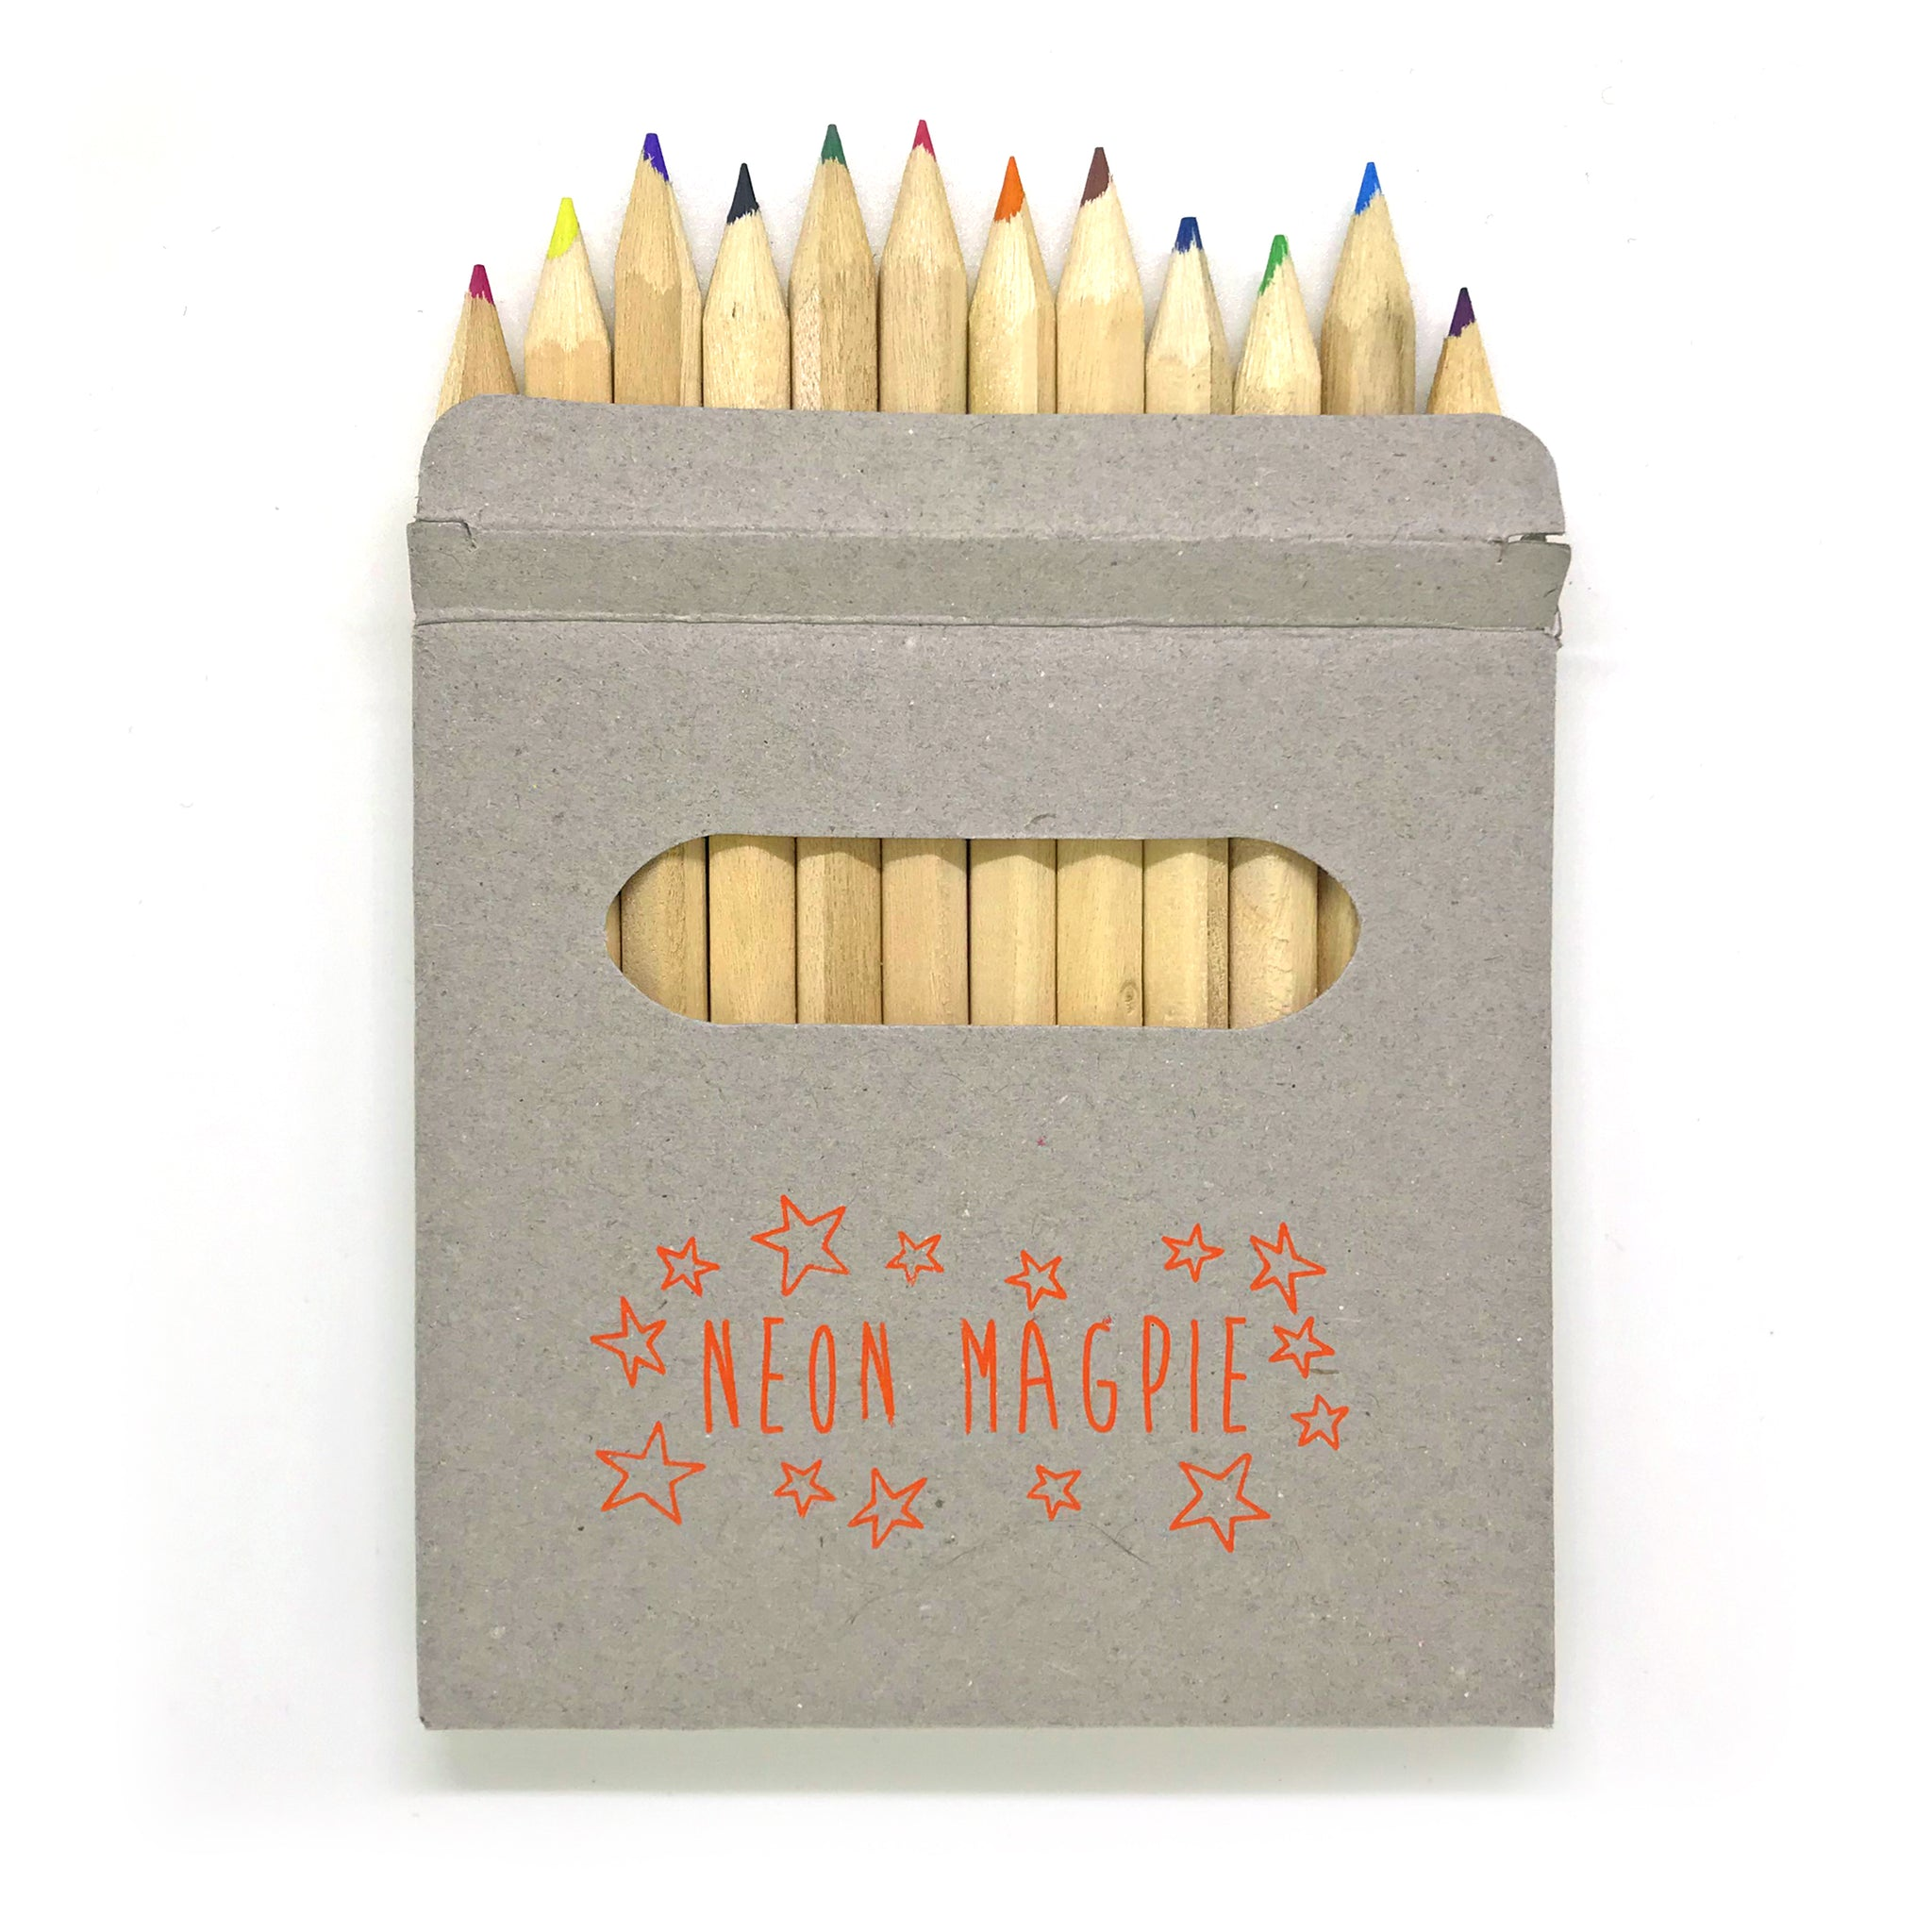 Colouring Pencil set - Neon Magpie